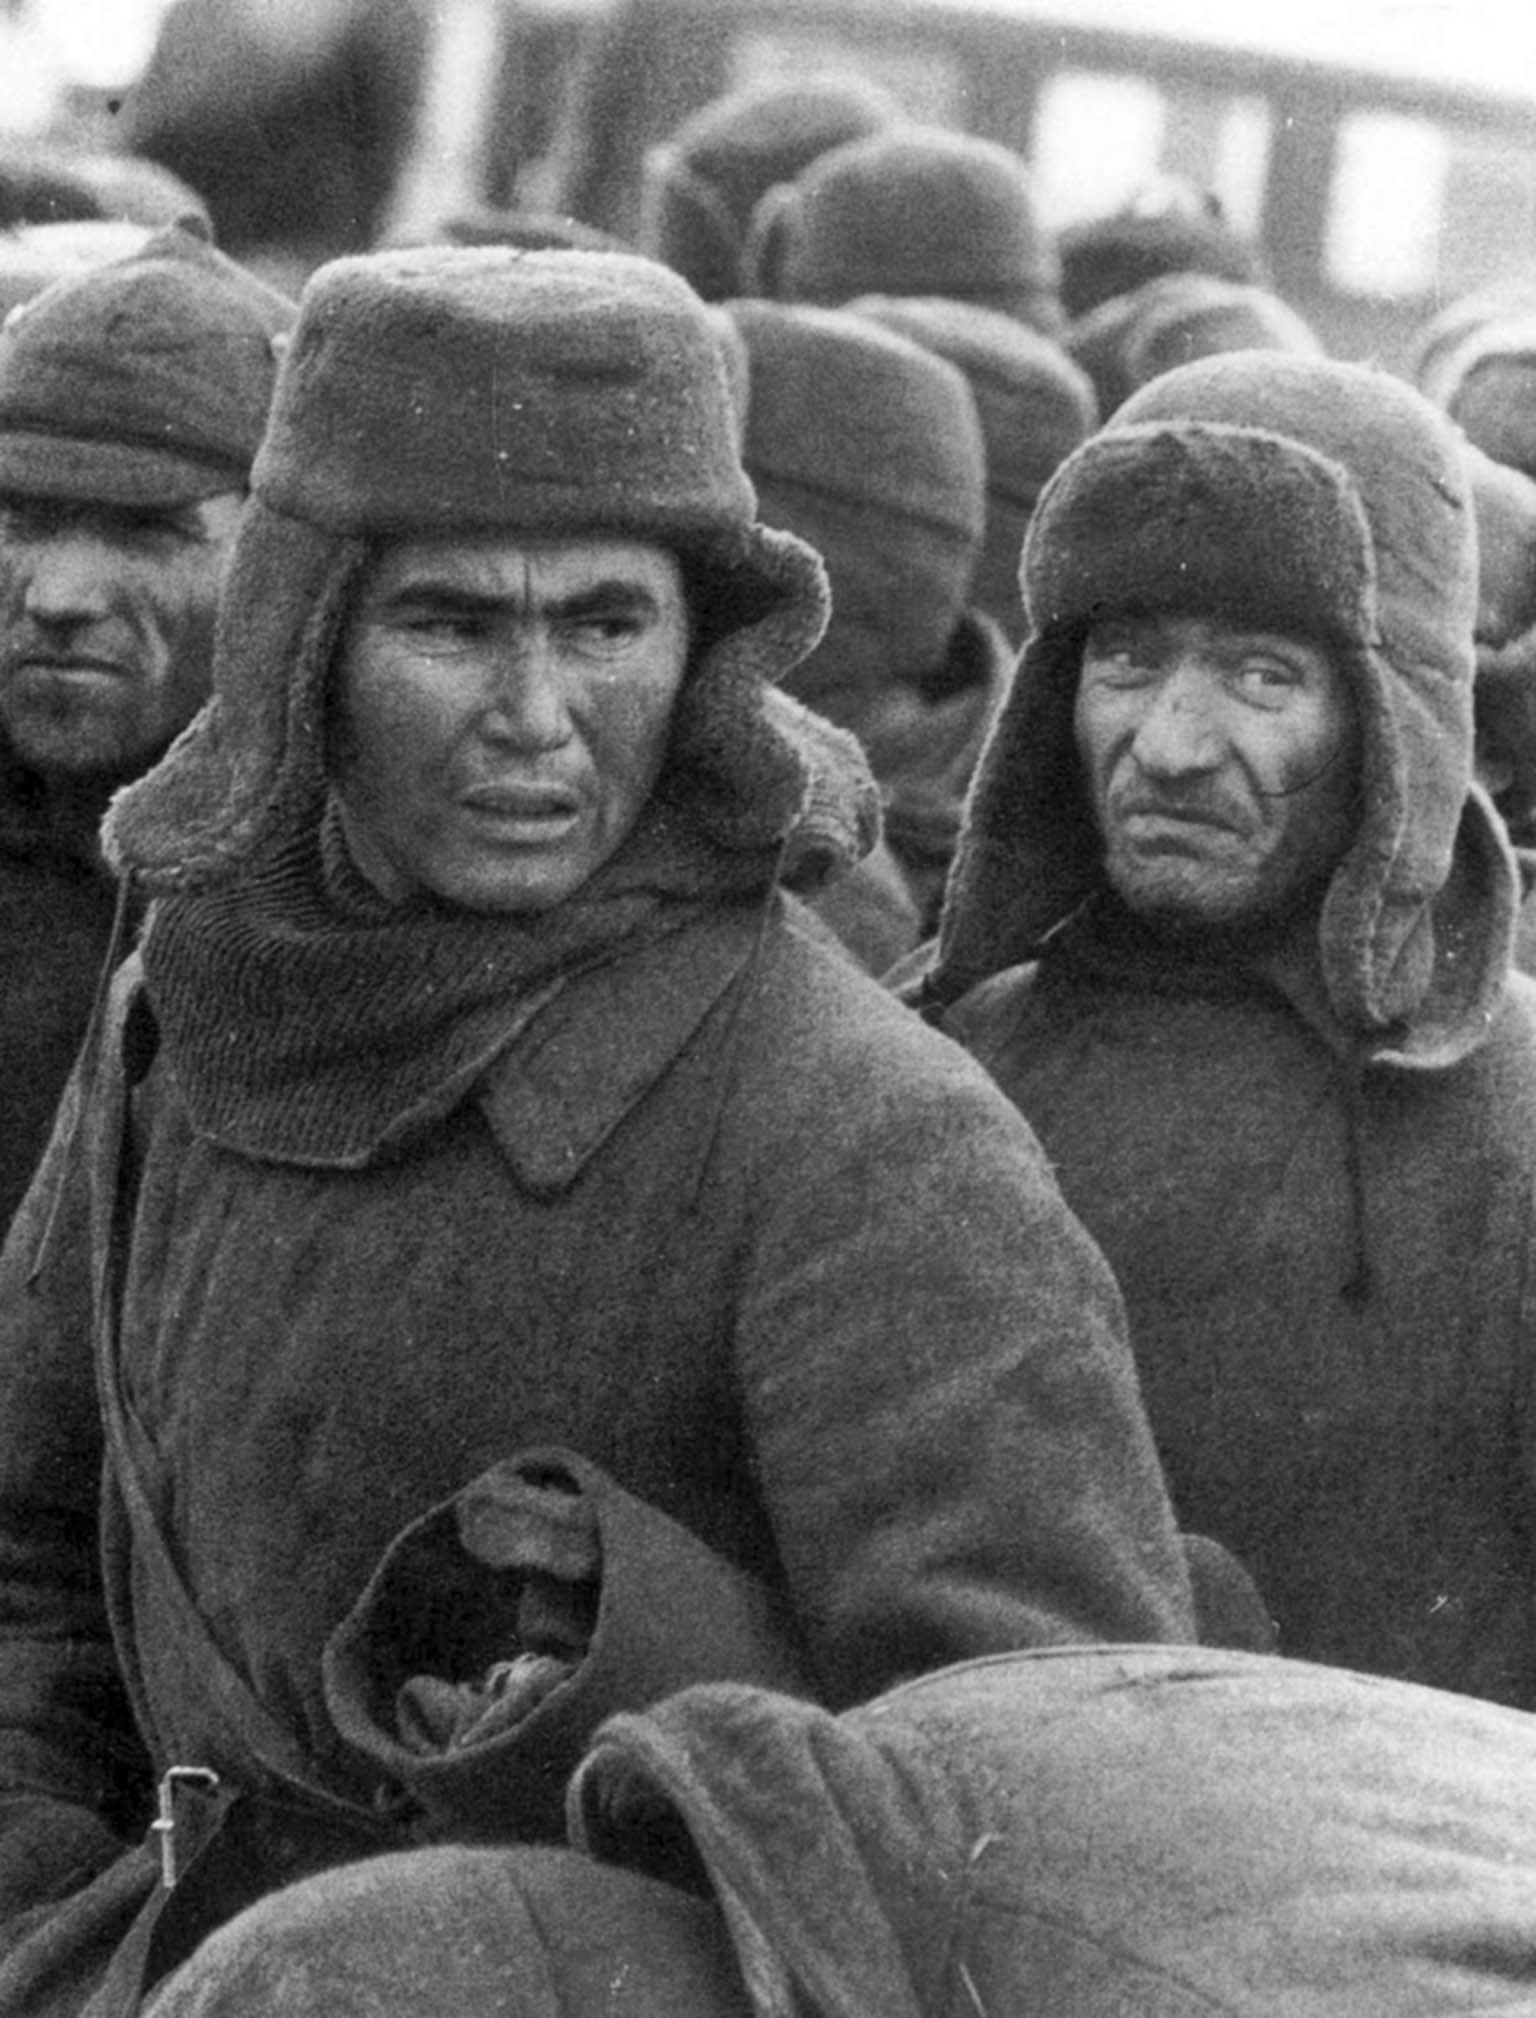 Soldiers of the Red Army